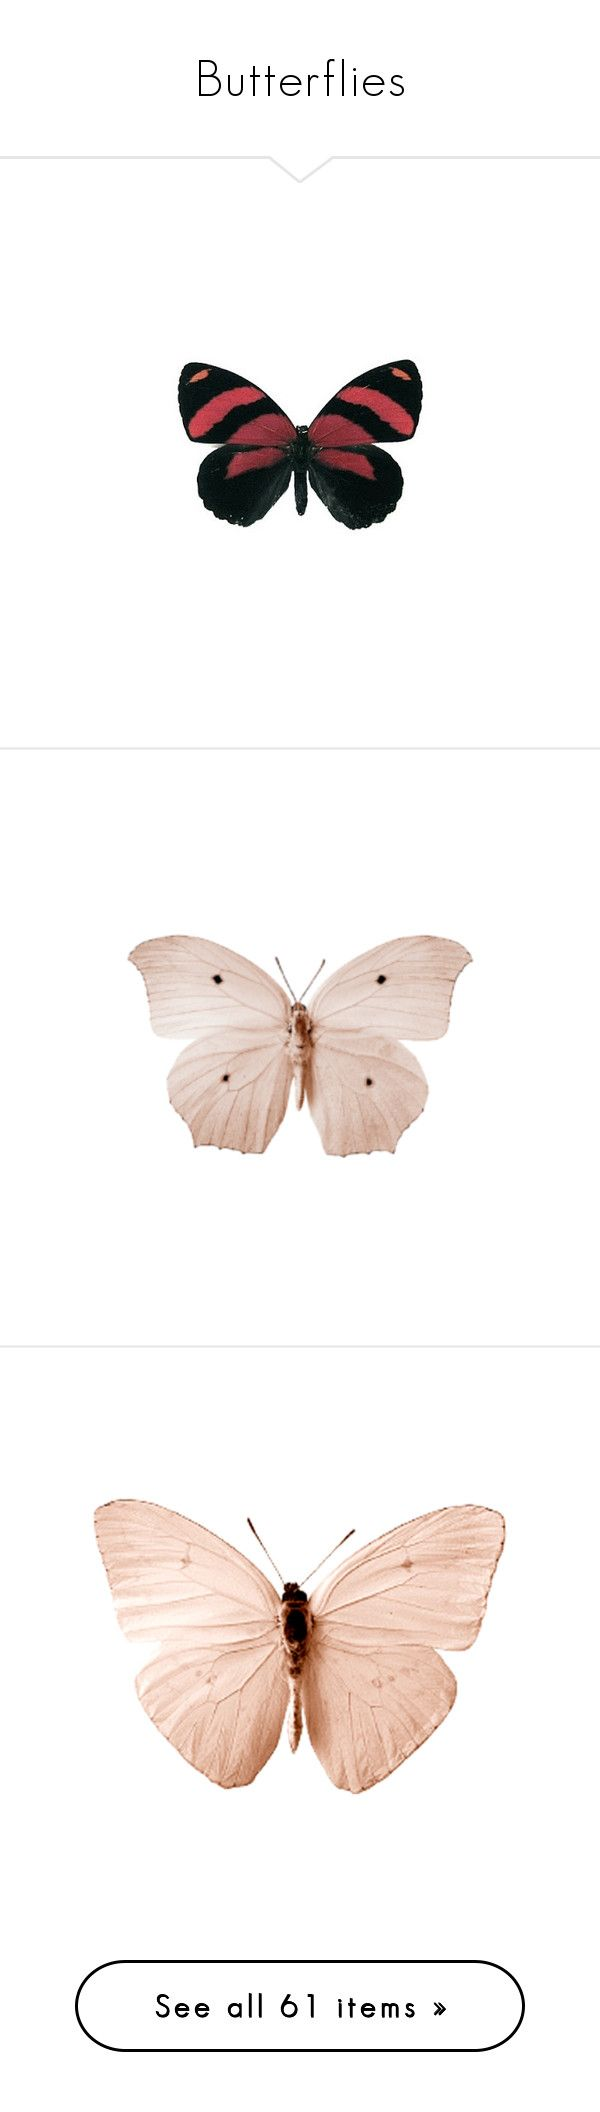 """""""Butterflies"""" by lorika-borika on Polyvore featuring butterflies, backgrounds, animals, fillers, red, mariposas y alas, filler, other, pink и detail"""